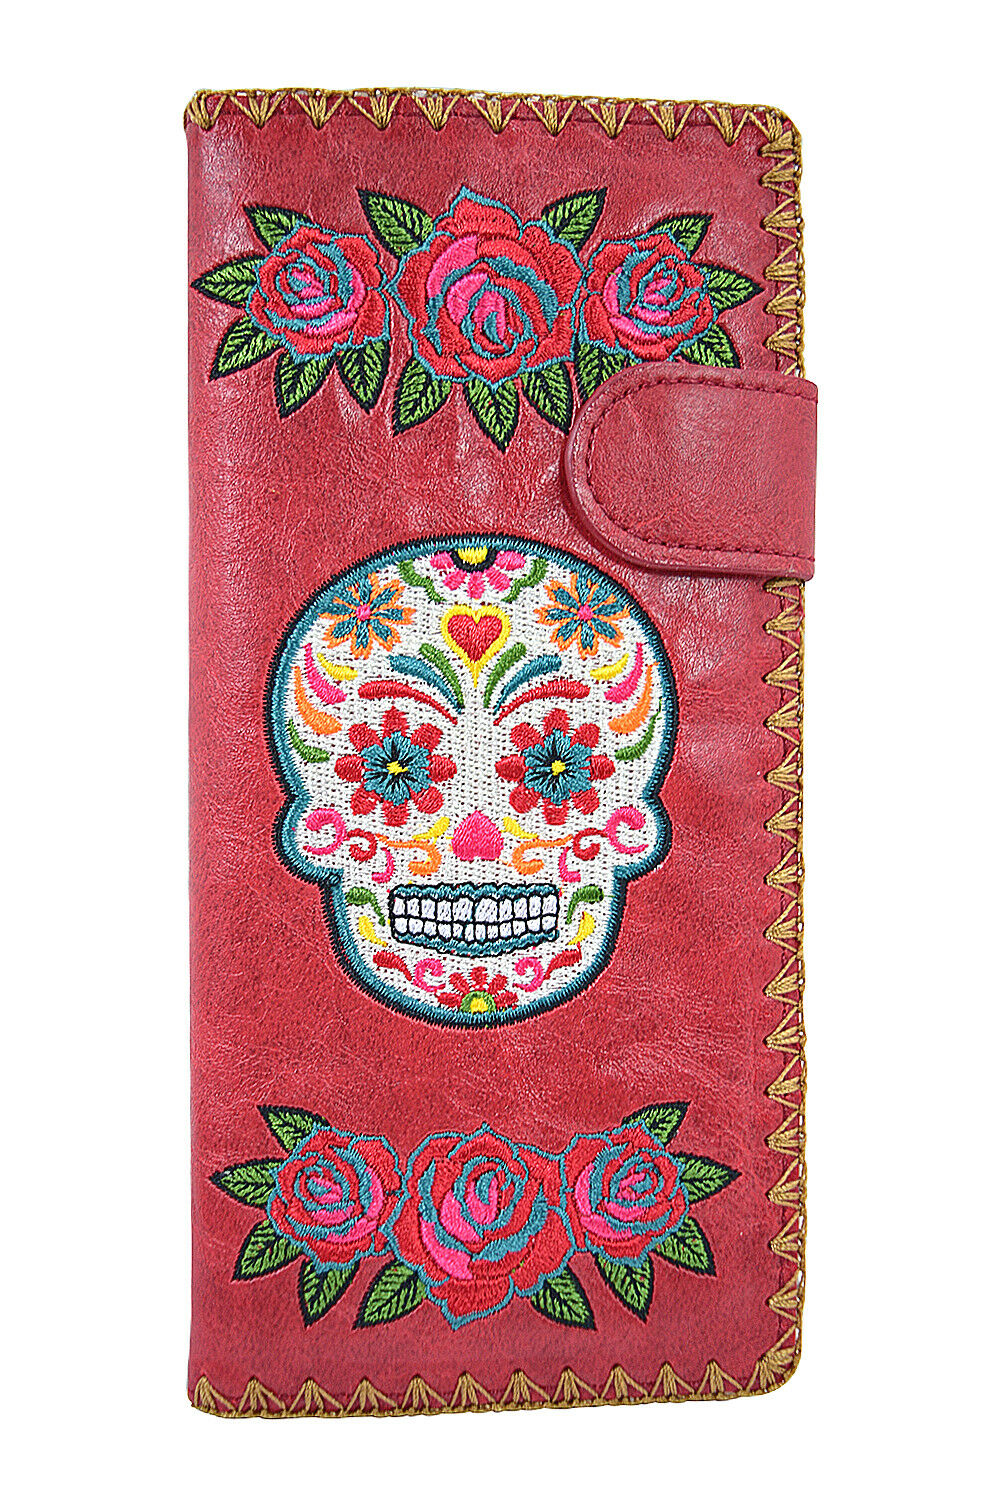 Lavishy Rose & Sugar Skull Day of the Dead Embroidered Large Wallet